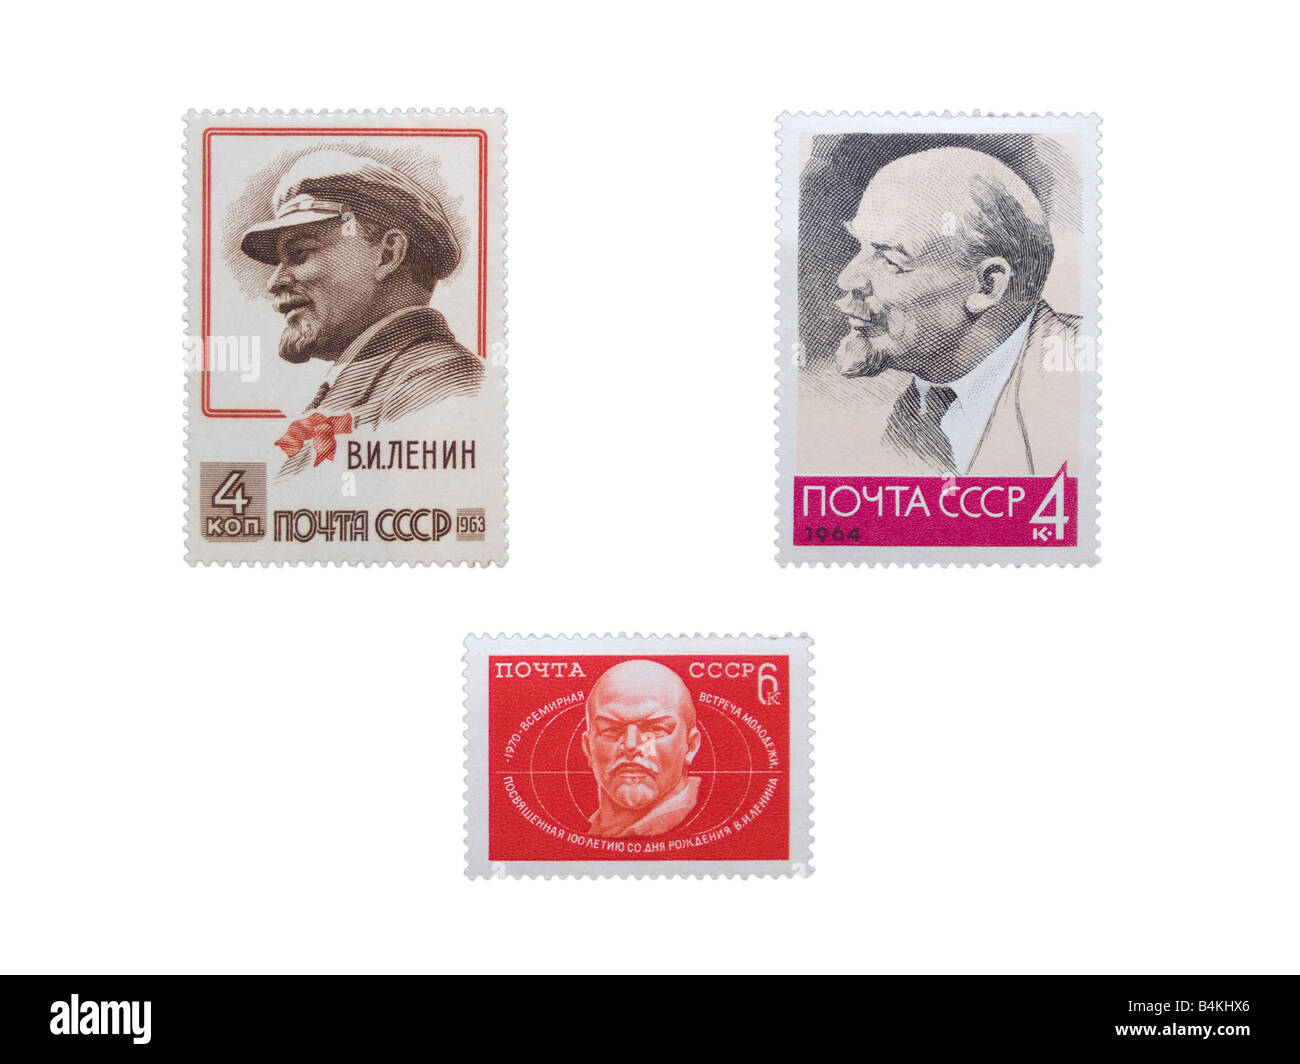 Rare Postage Stamps Photos & Rare Postage Stamps Images - Alamy